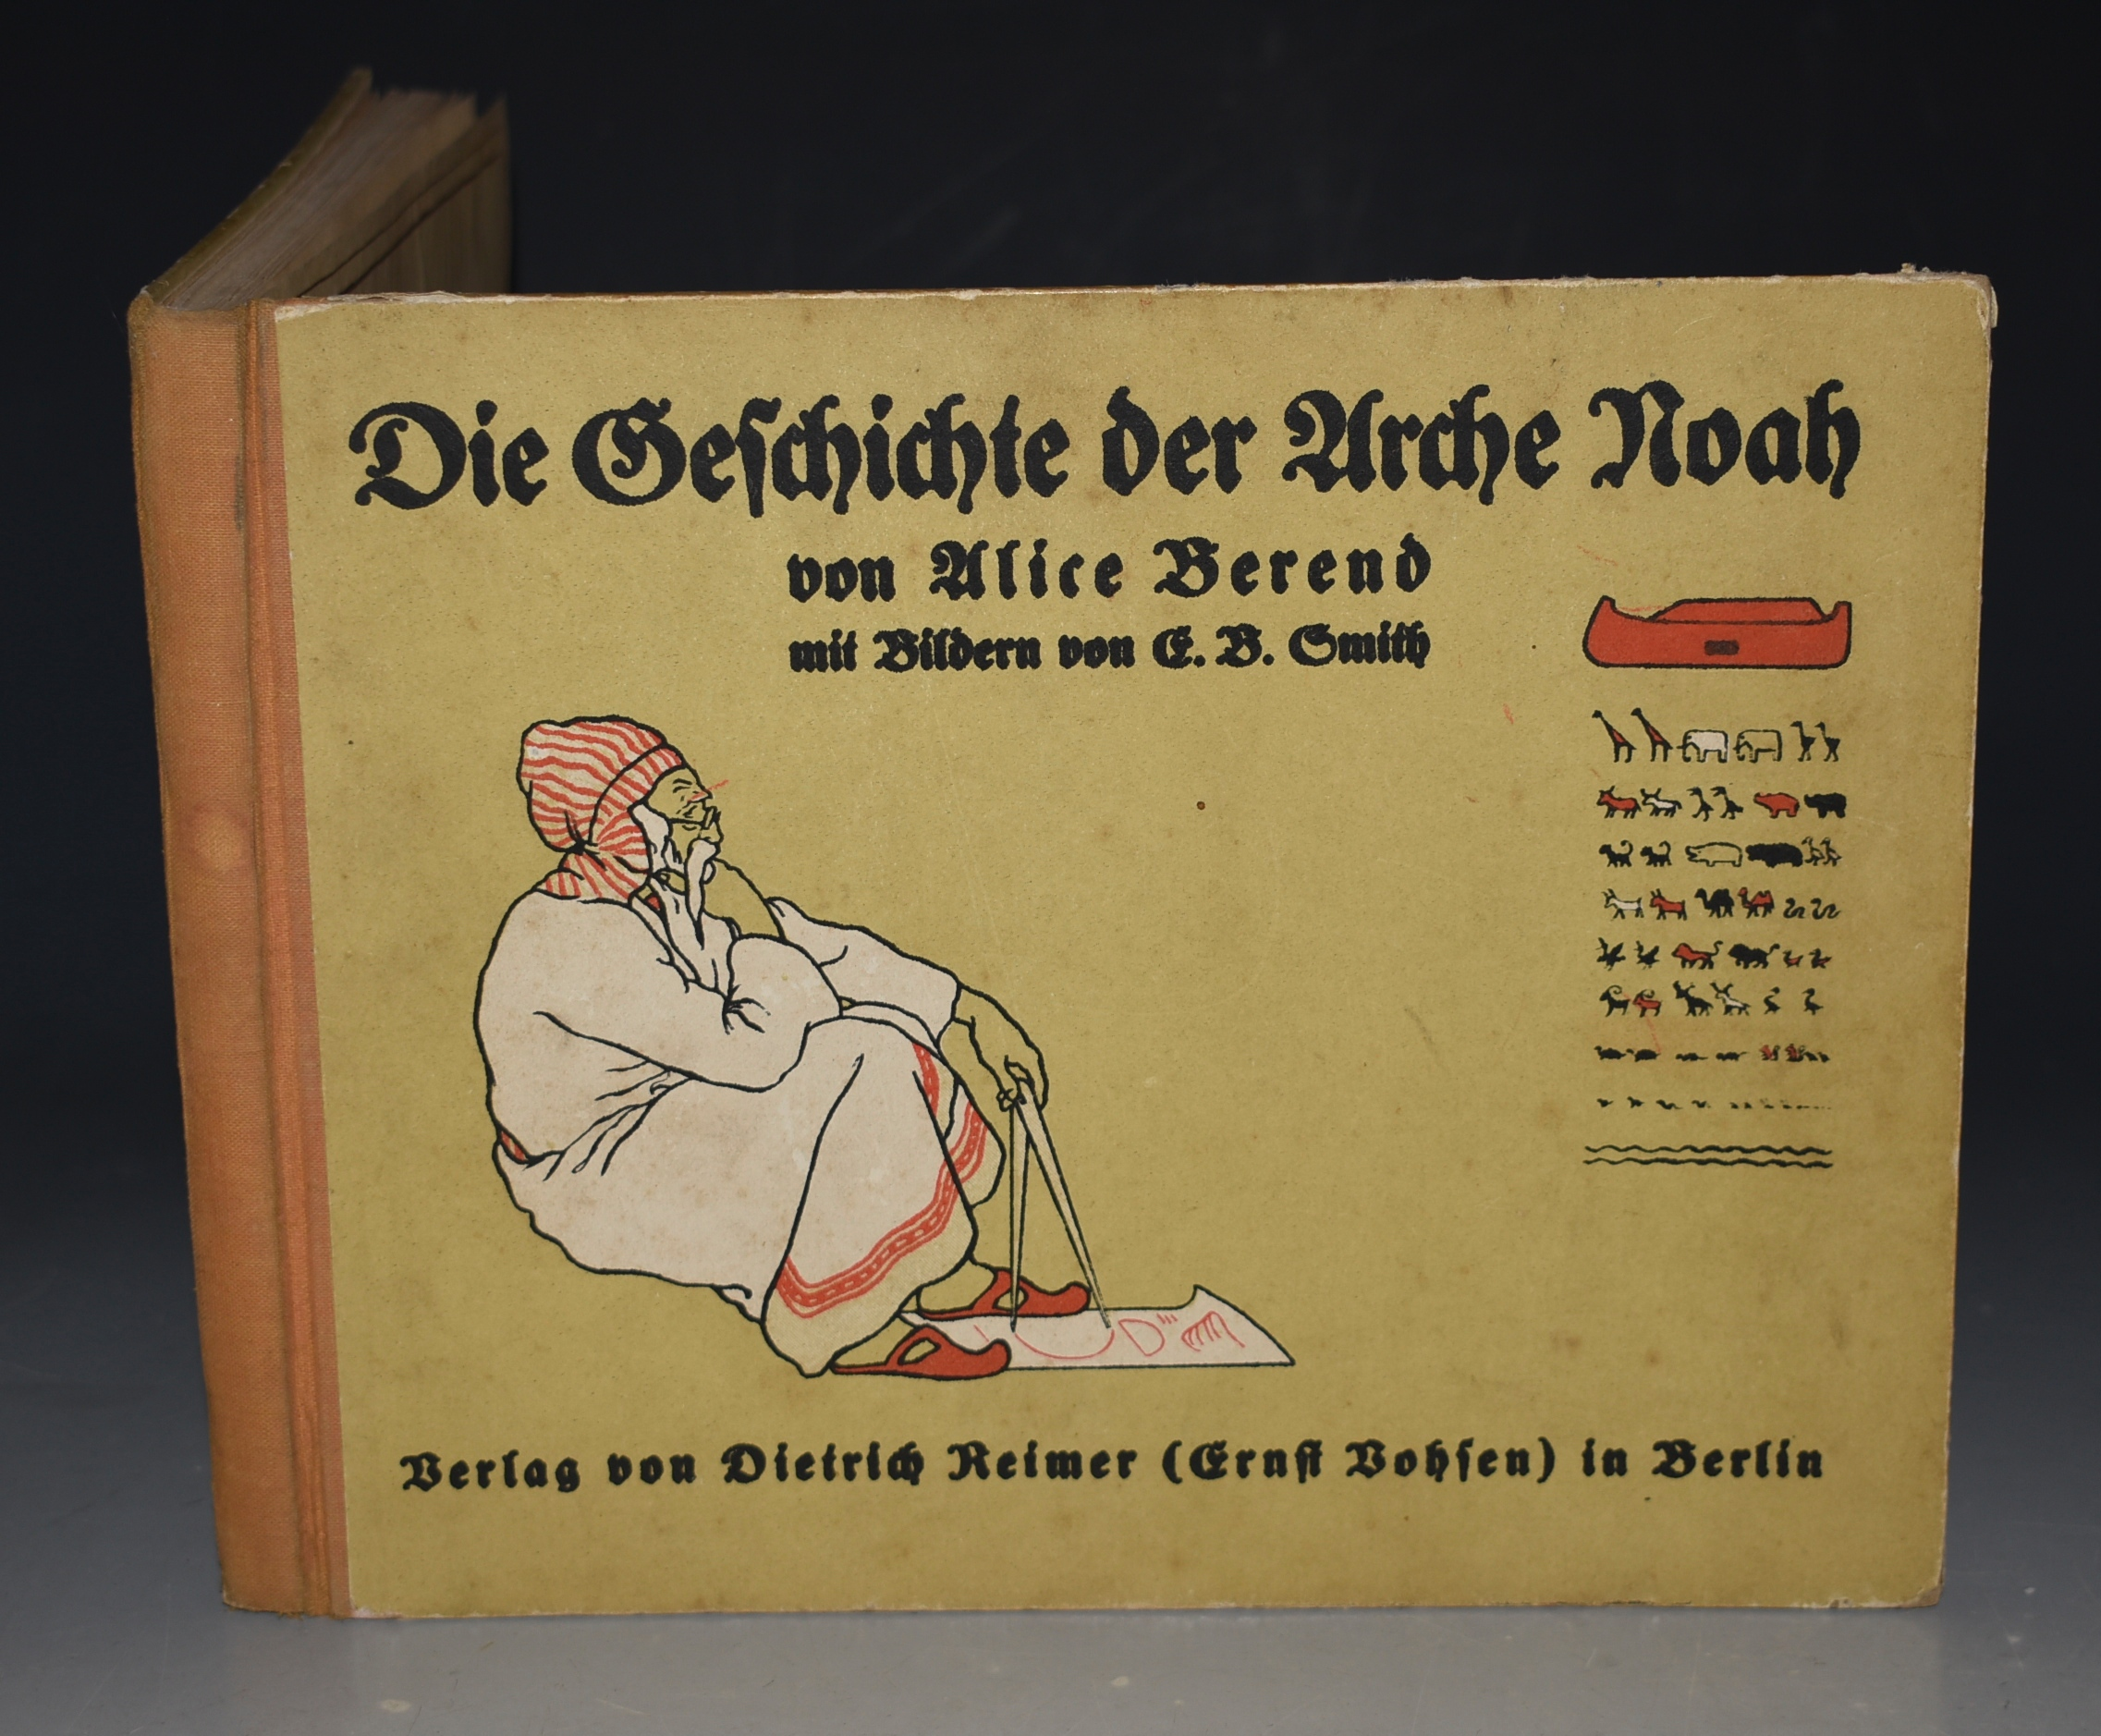 Image for Die Geschichte der Arche Noah. Erahlt von Alice Berend. Mit bildern von E. B. Smith. Verlag von Dietrich Reimer. (The story of Noah's ark. By Alice Berend. With images by E. B. Smith. Published by Dietrich Reimer.)